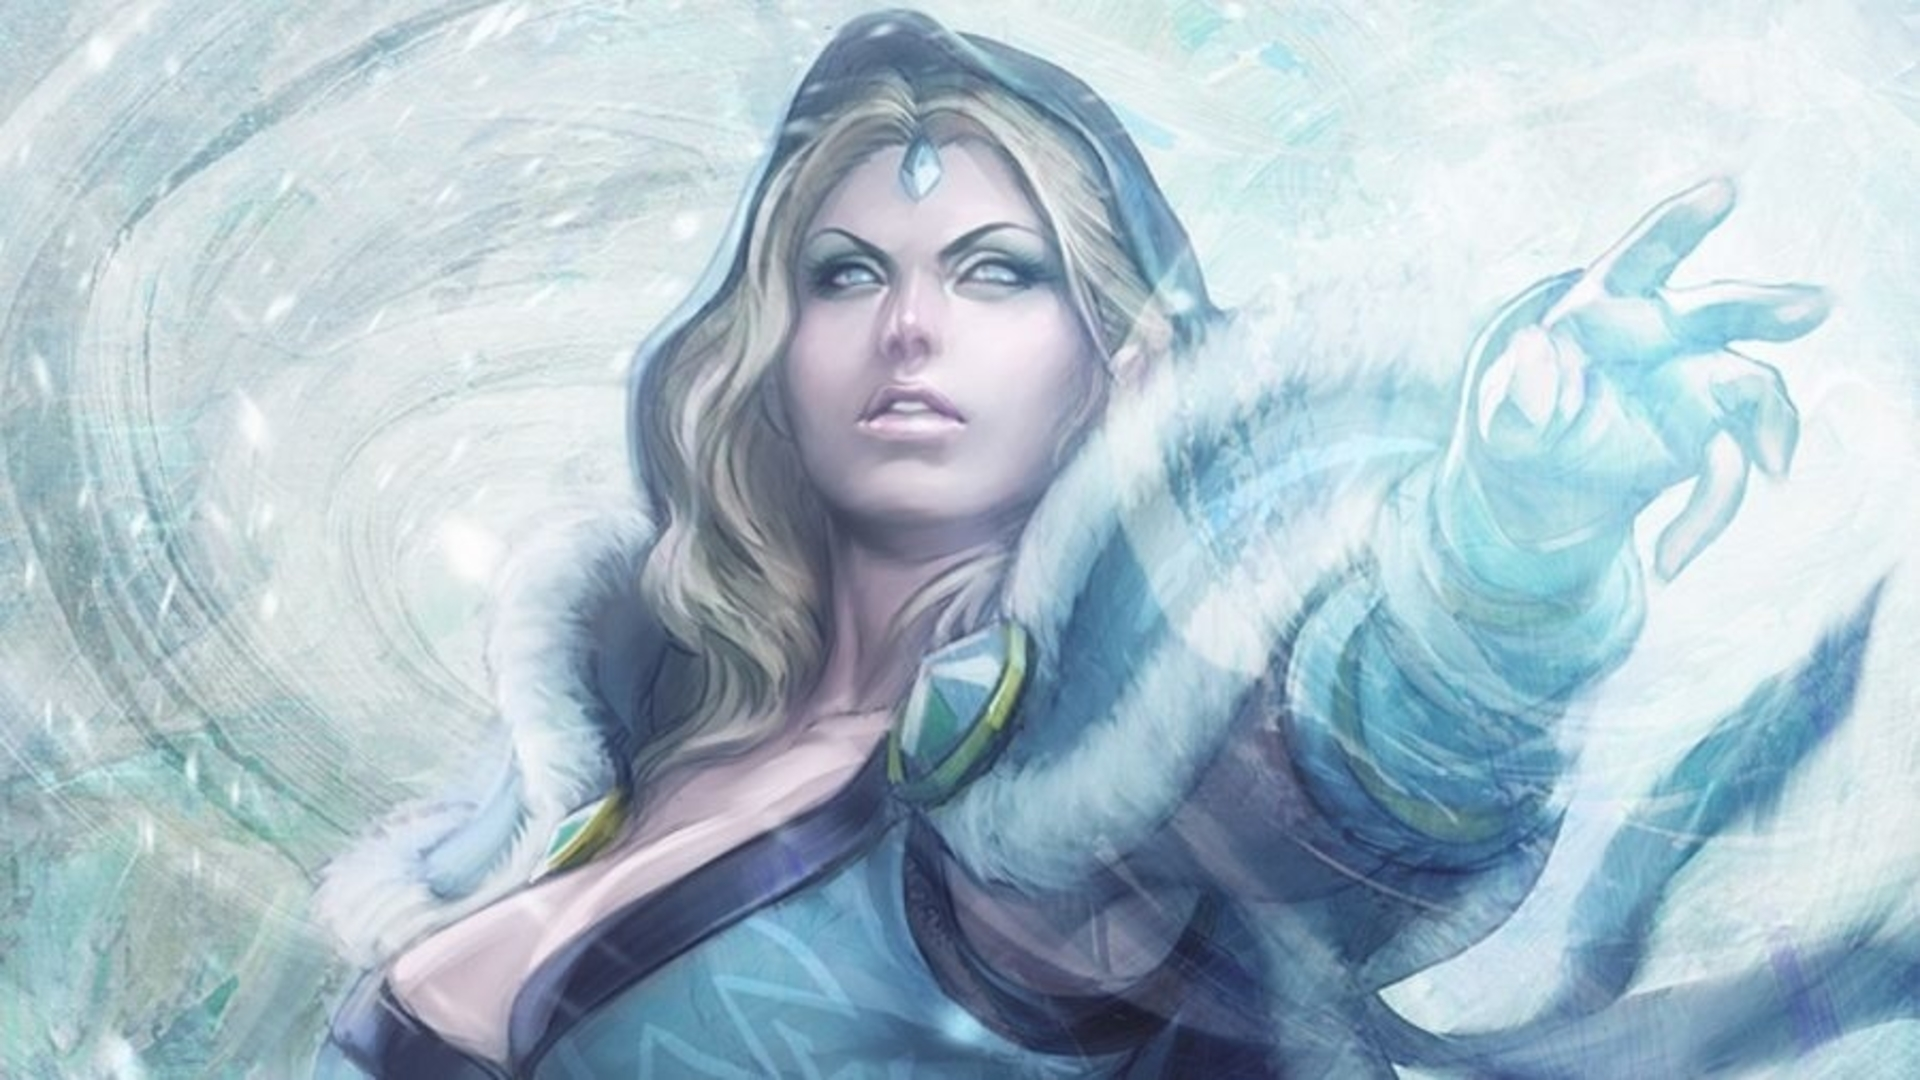 Dota 2 gets a new hero and its 7.29 update in April